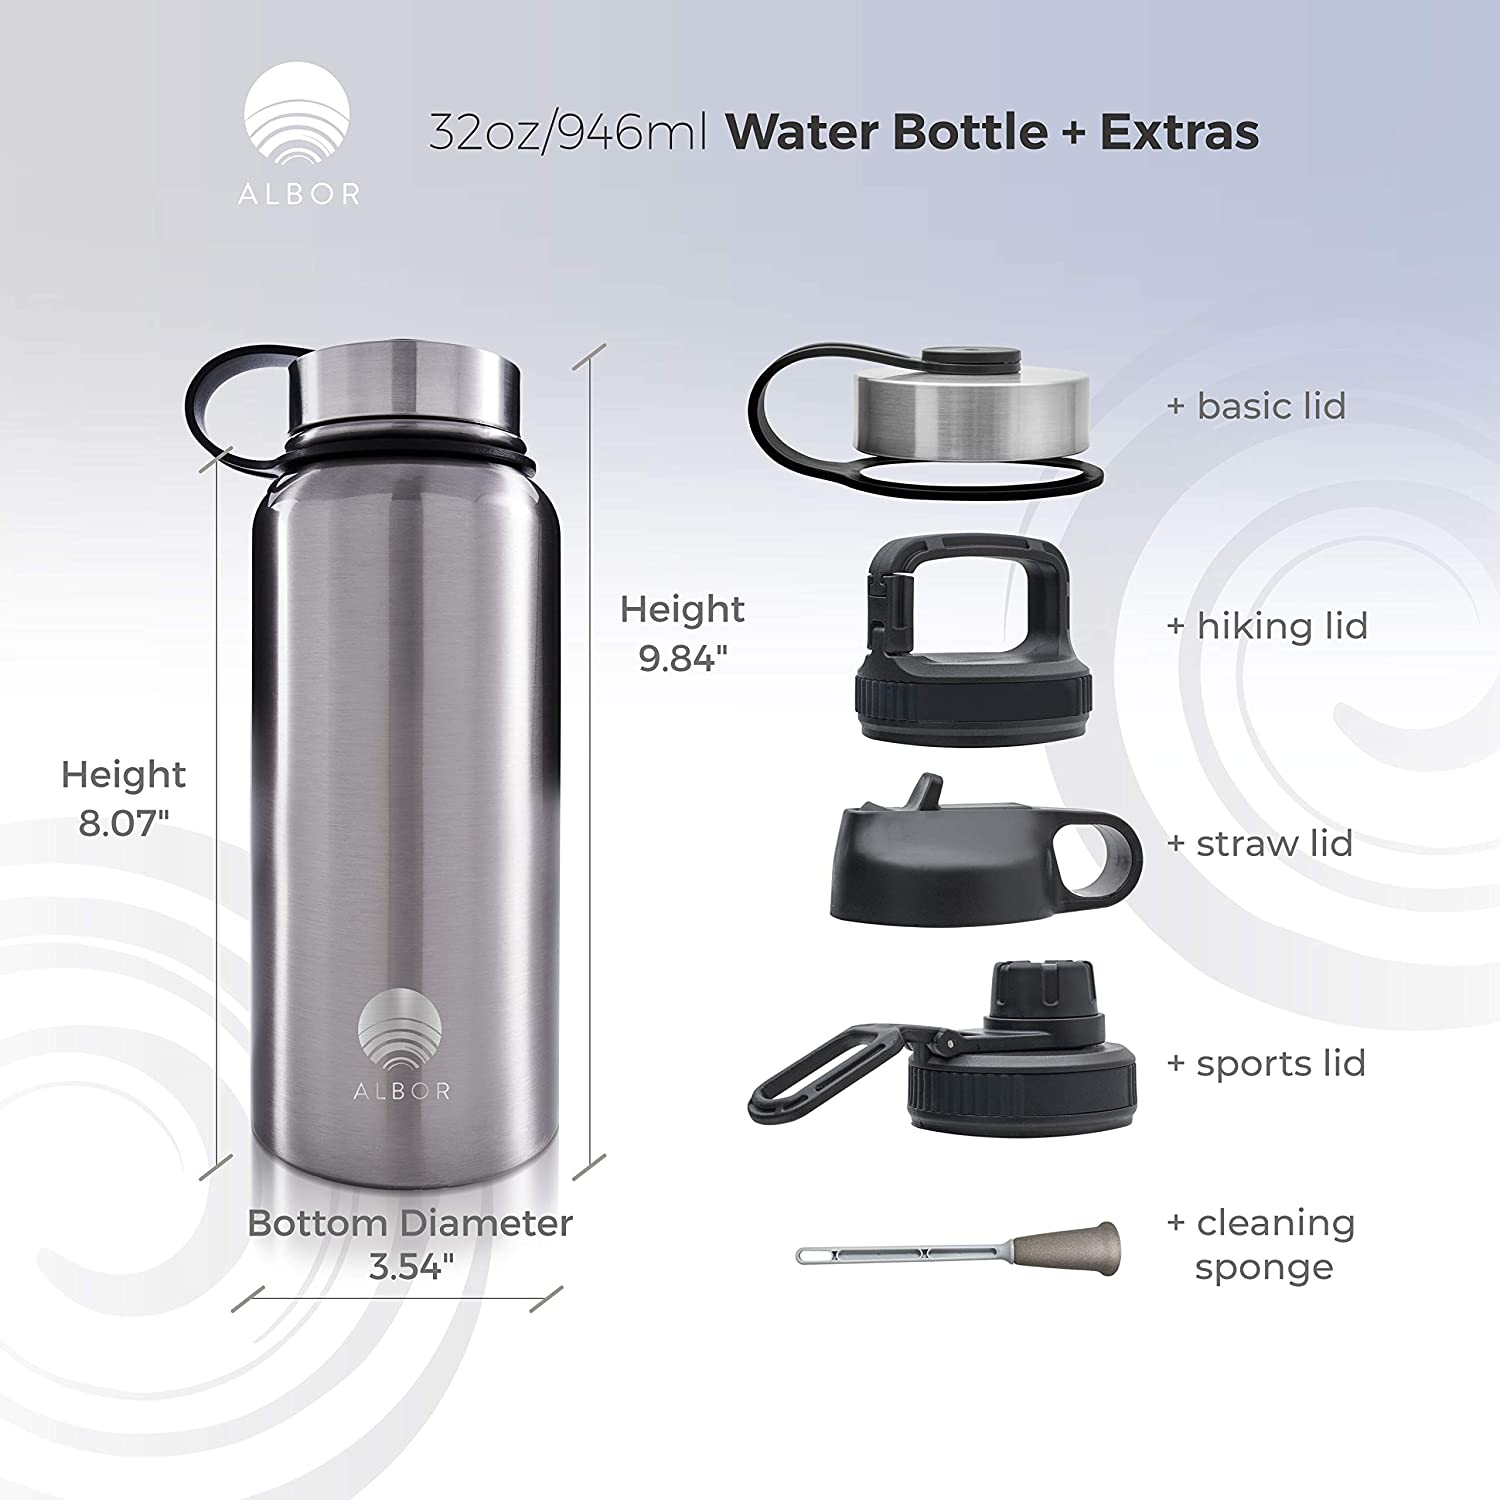 ALBOR Insulated Water Bottle with Straw 32 Oz Water Bottle Stainless Steel Water Bottle with Straw